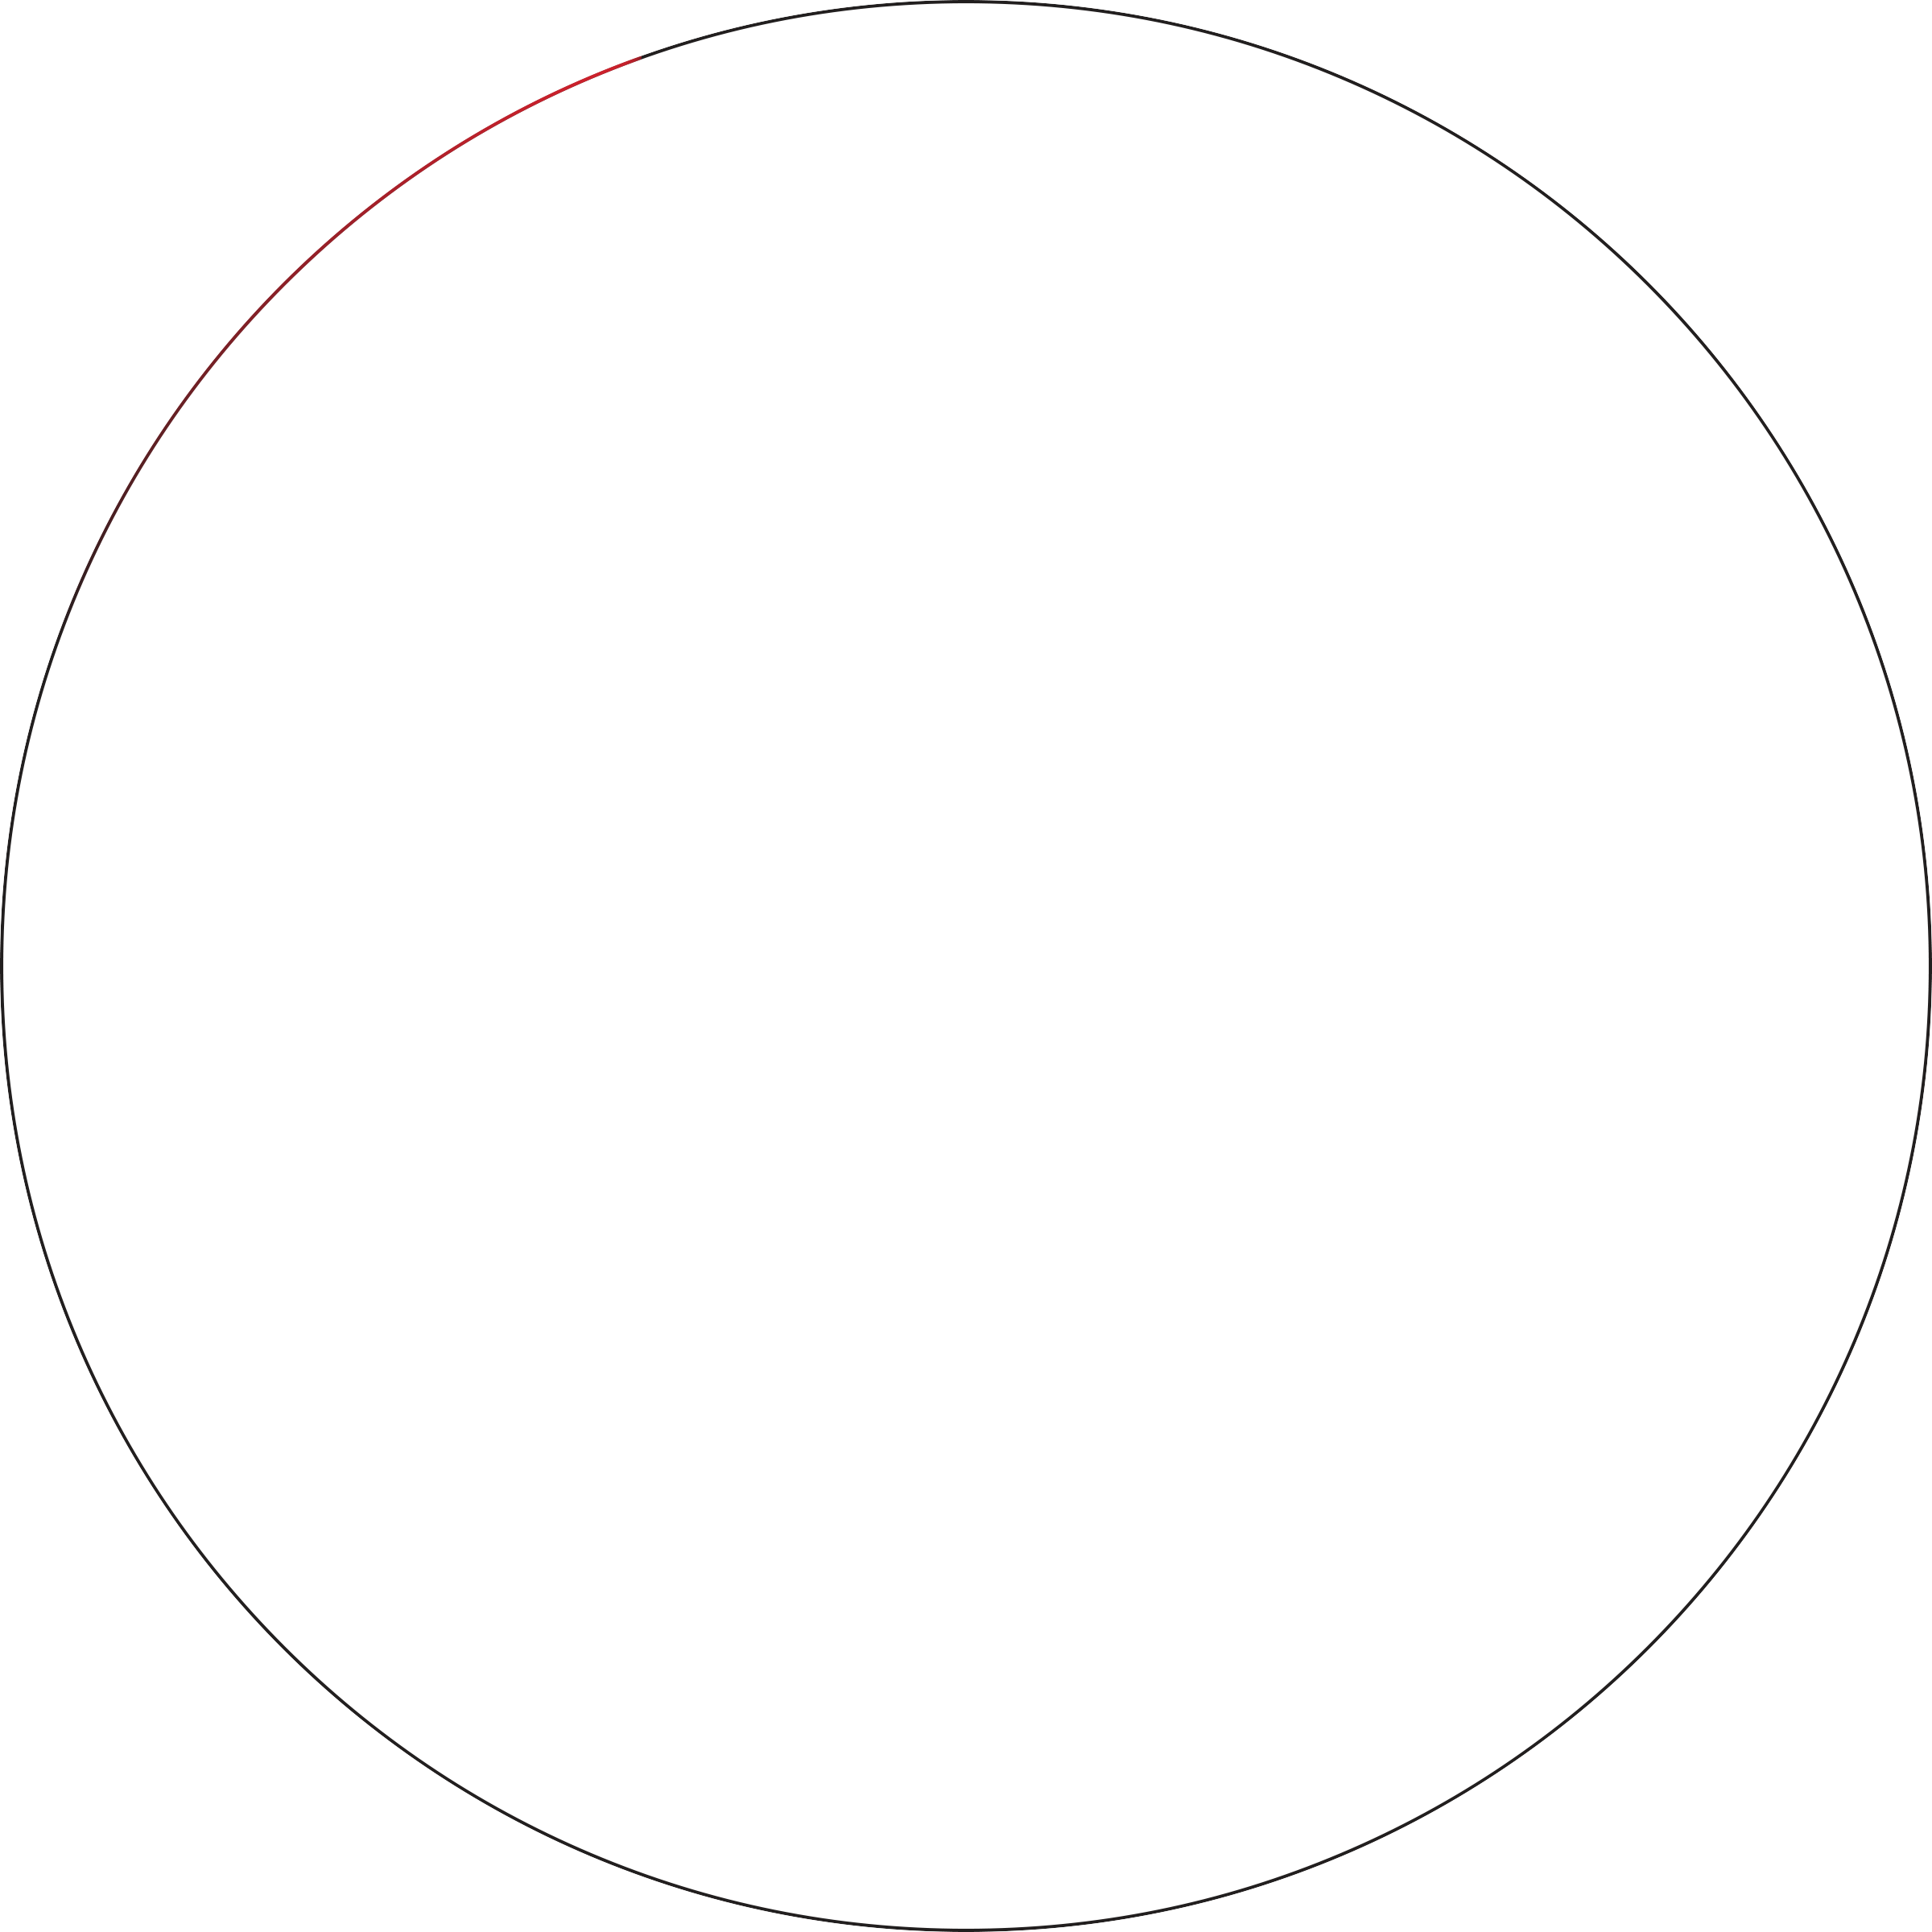 The transparent circle. Rocket lab space is